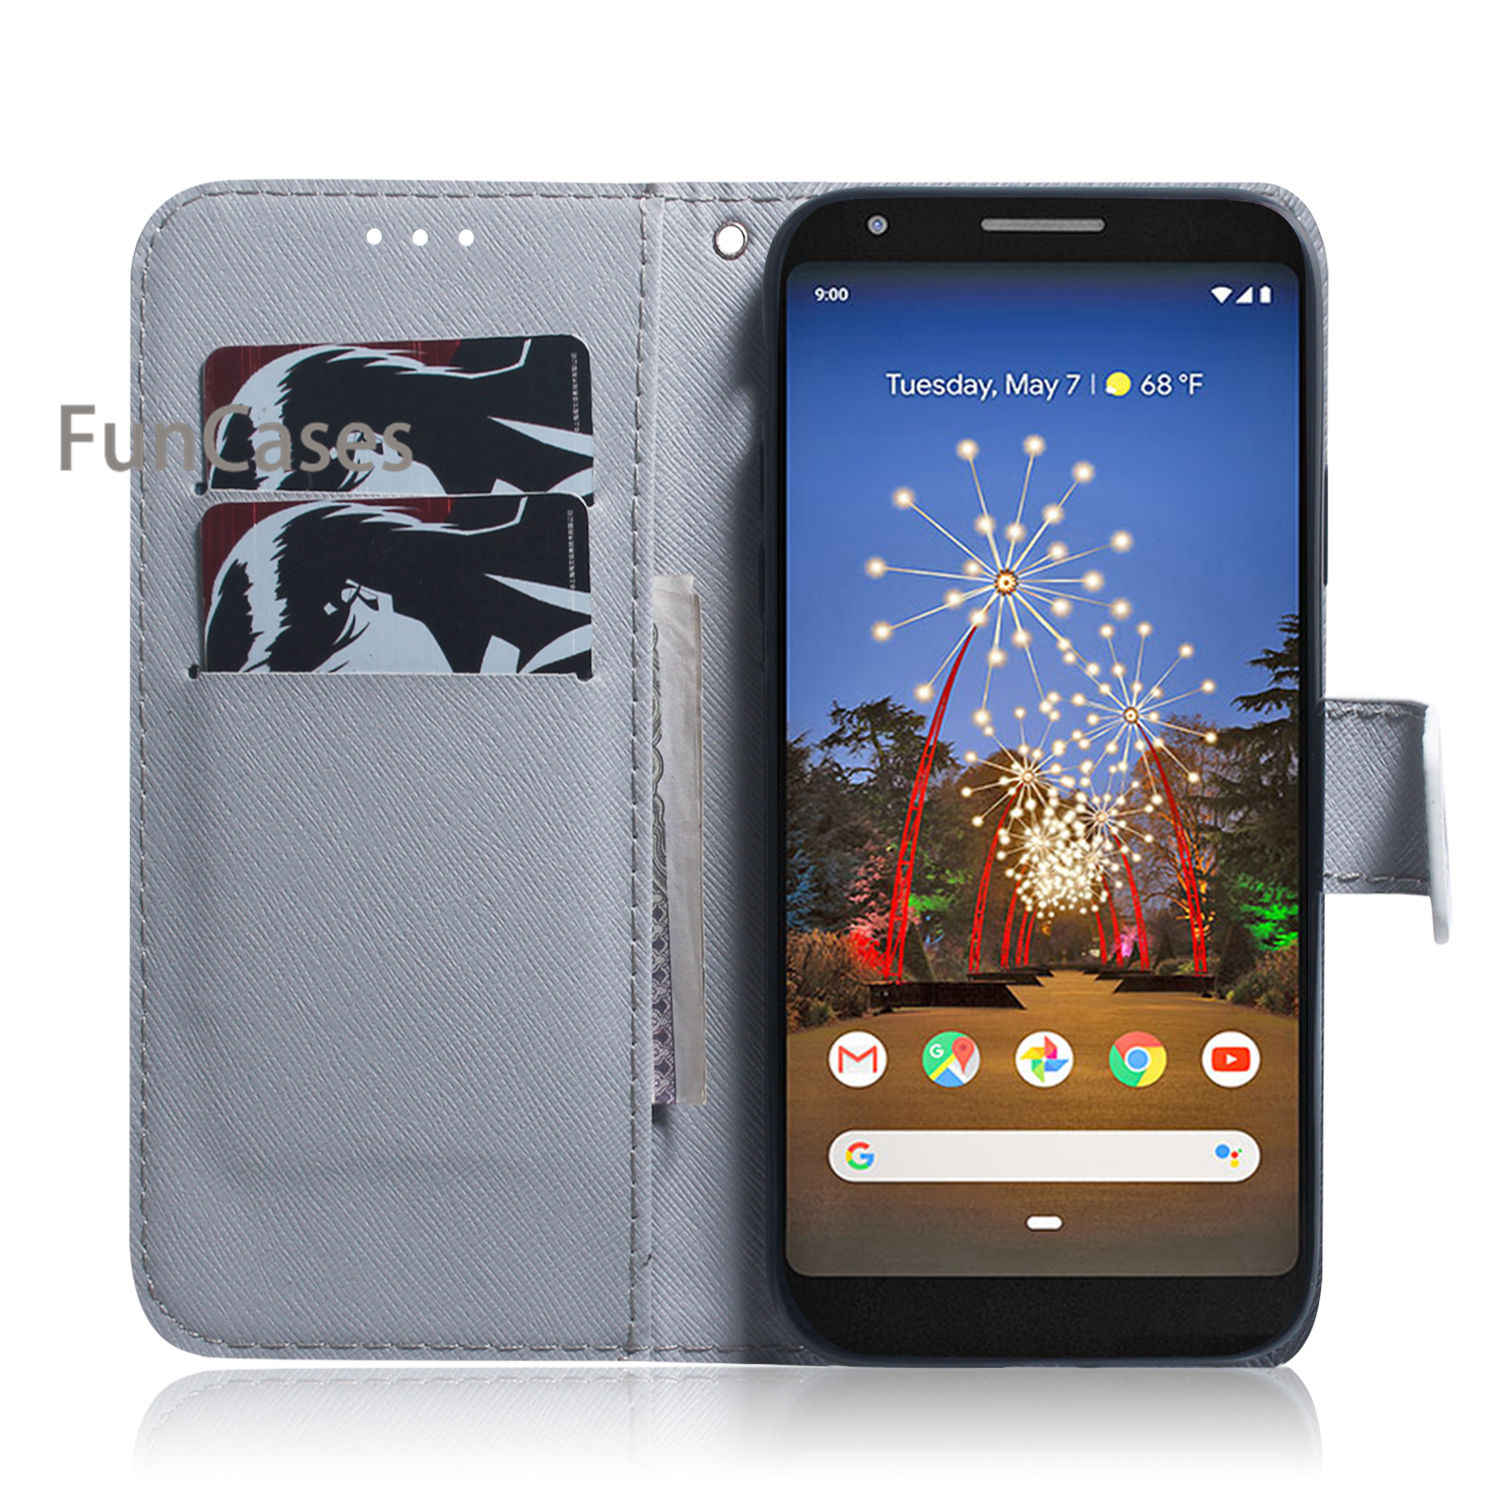 3A XL Phone Cases Covers For hoesje Google Pixel 3A XL Hot Balr PU Leather Flip Case sFor Coques Google carcaso Pixel 3A XL